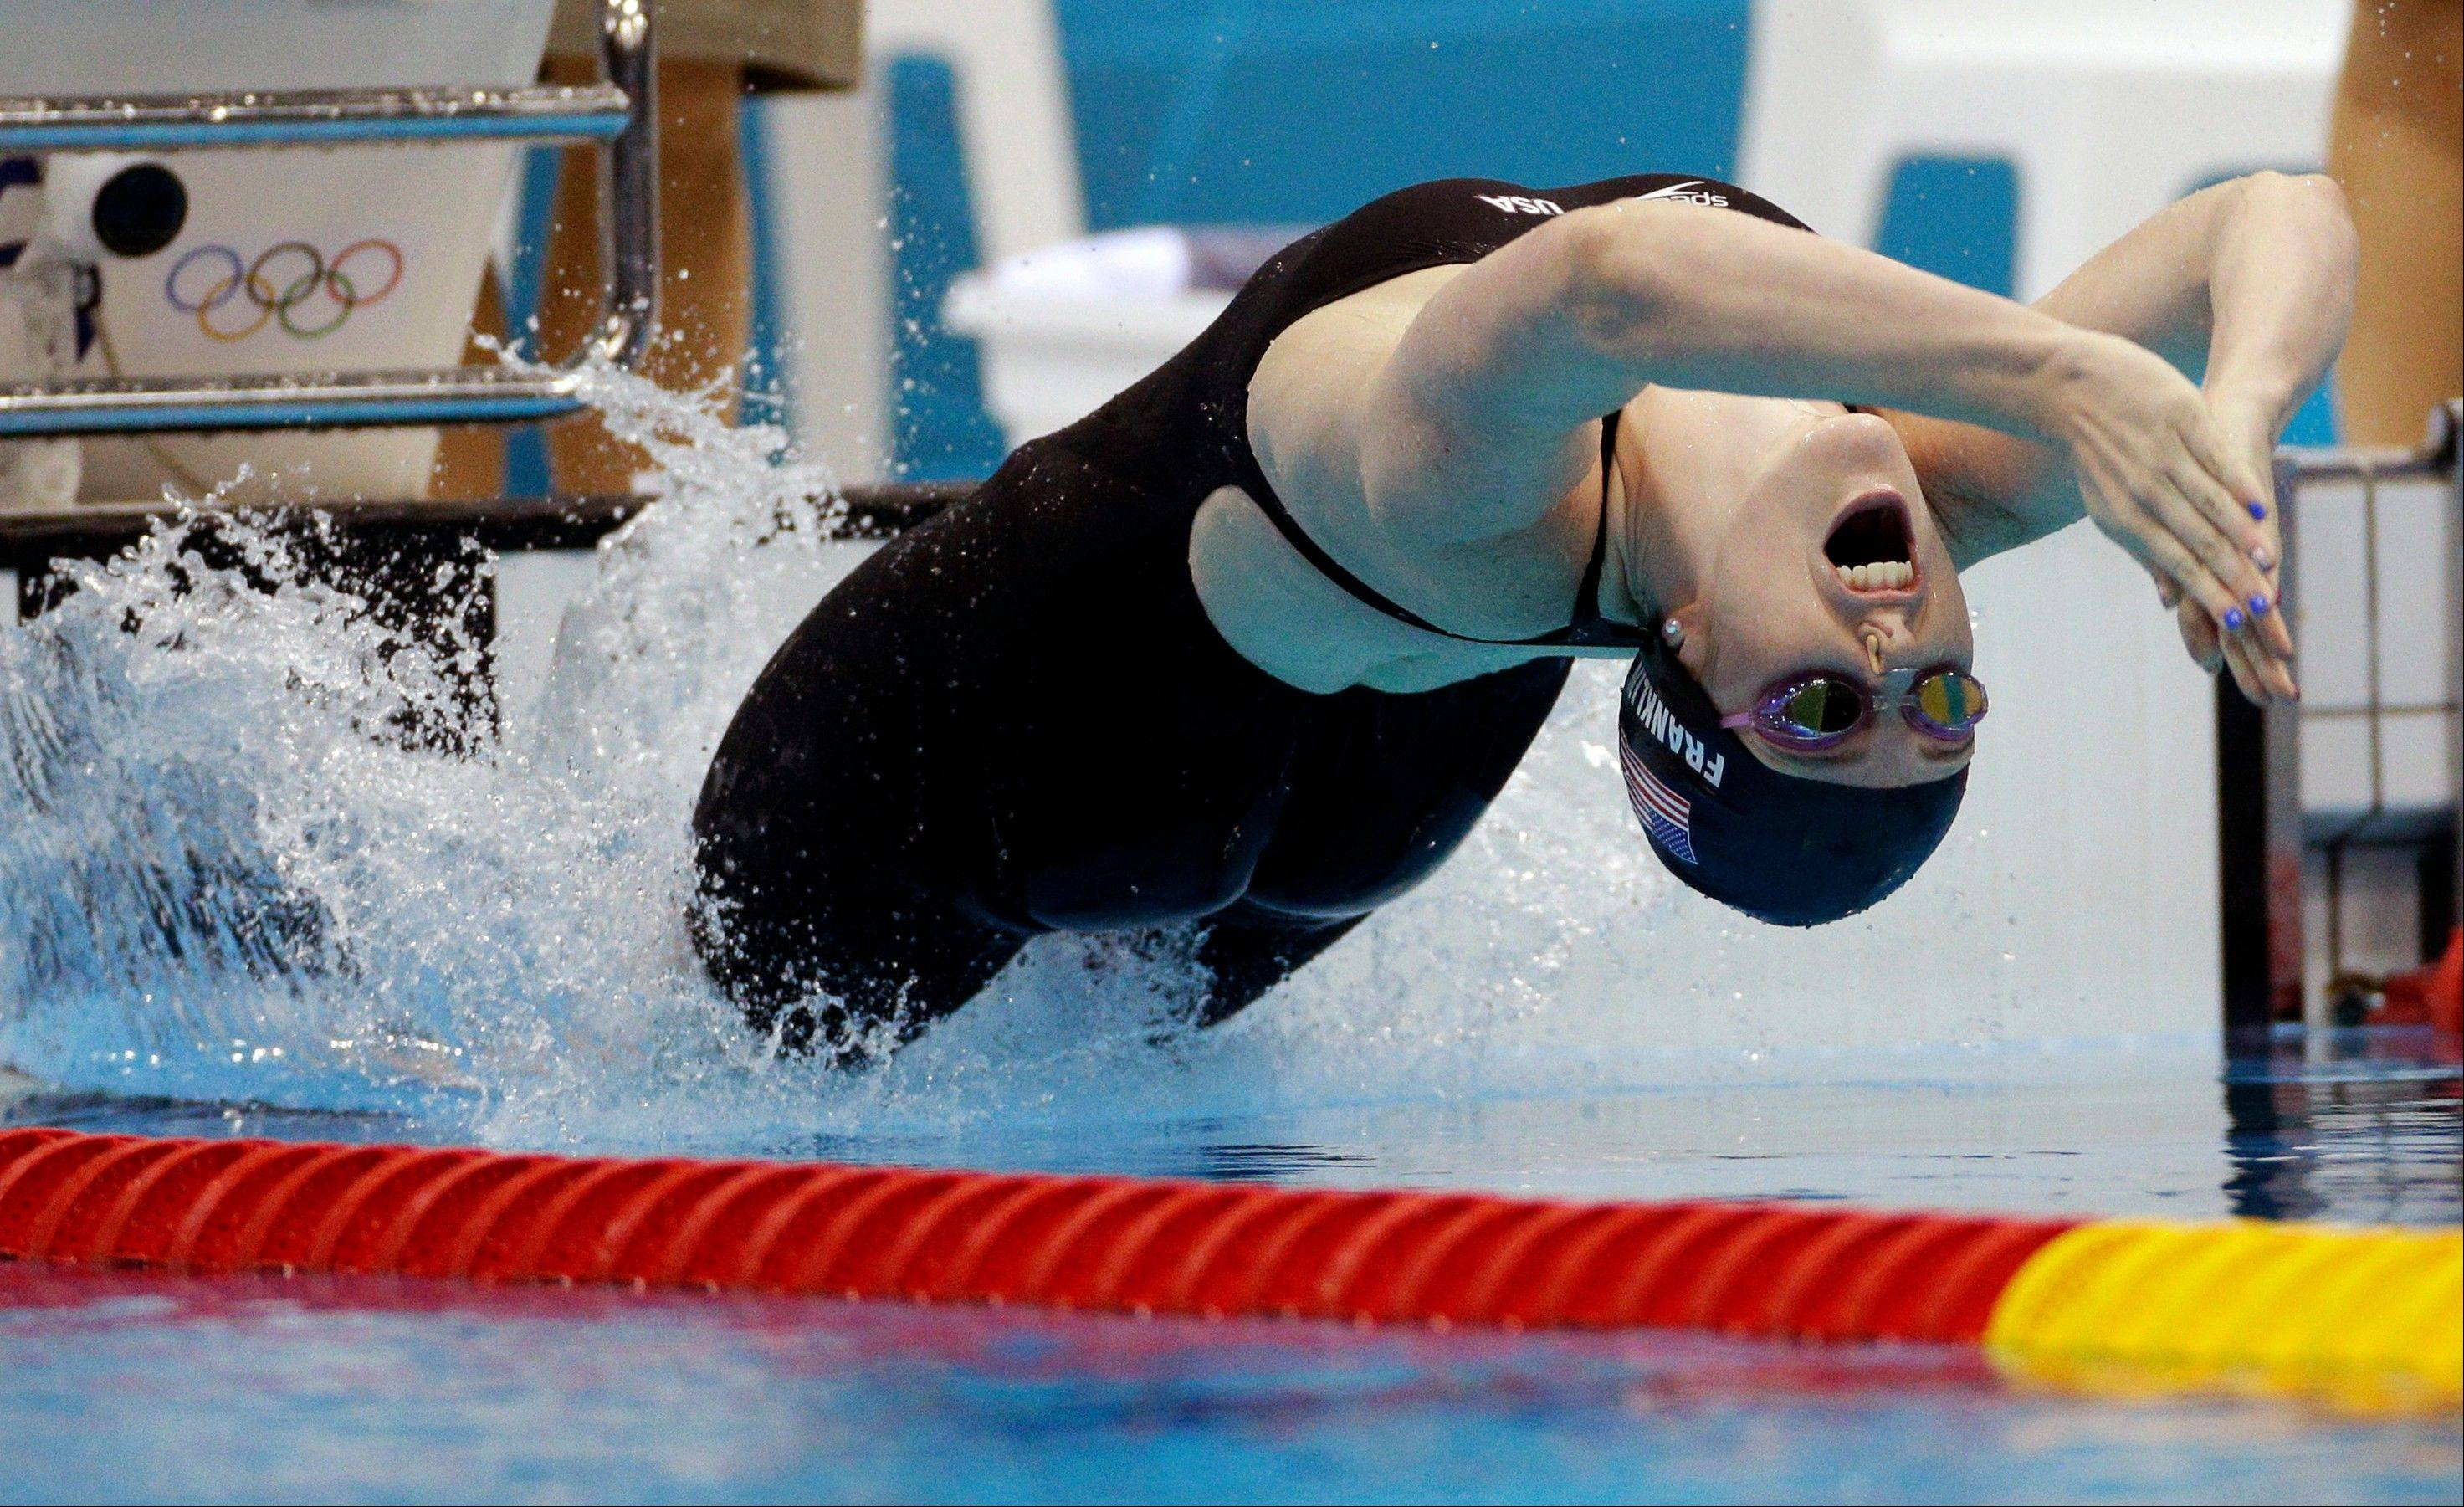 United States' Missy Franklin starts in the women's 200-meter backstroke final at the Aquatics Centre in the Olympic Park during the 2012 Summer Olympics in London, Friday, Aug. 3, 2012. Franklin won a gold medal in the event.